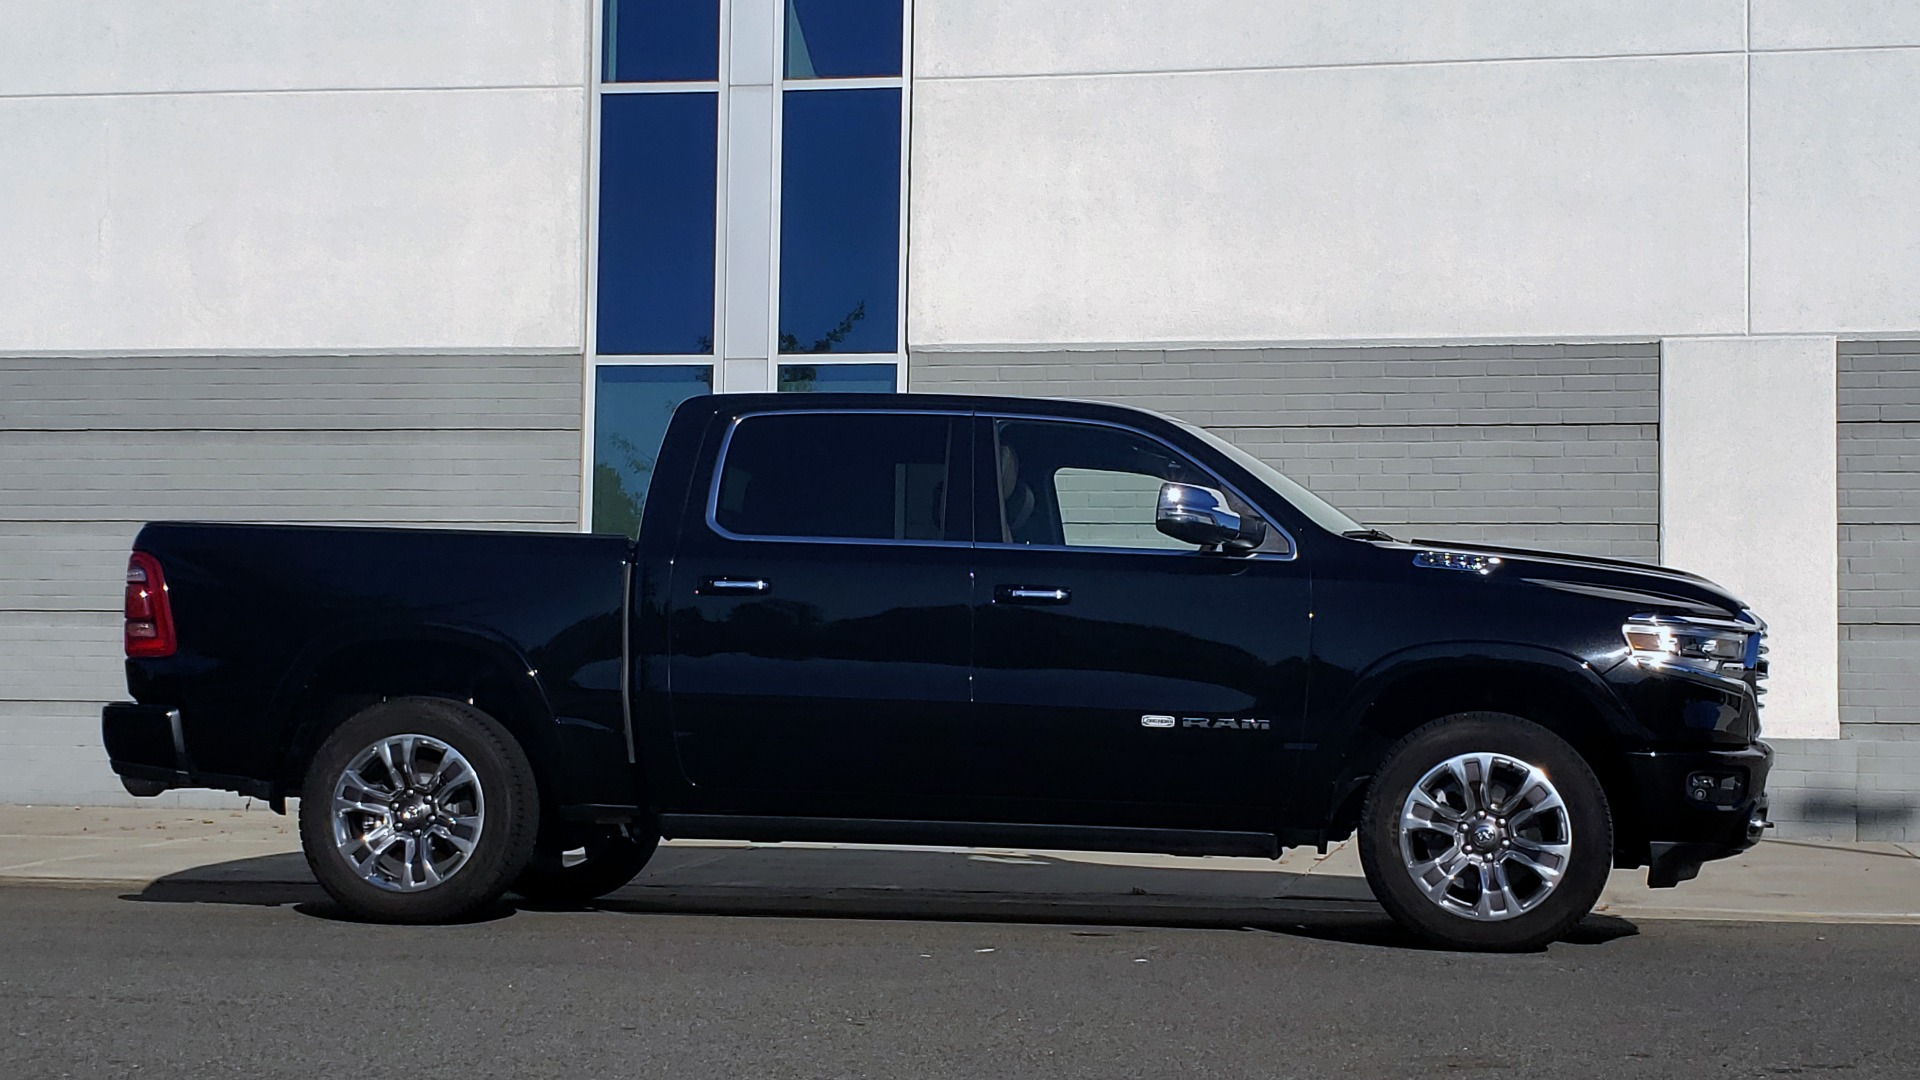 Used 2021 Ram 1500 LONGHORN LIMITED 4X4 / 5.7L HEMI / CREWCAB / H/K SND / PANO-ROOF / REARVIEW for sale $65,999 at Formula Imports in Charlotte NC 28227 7